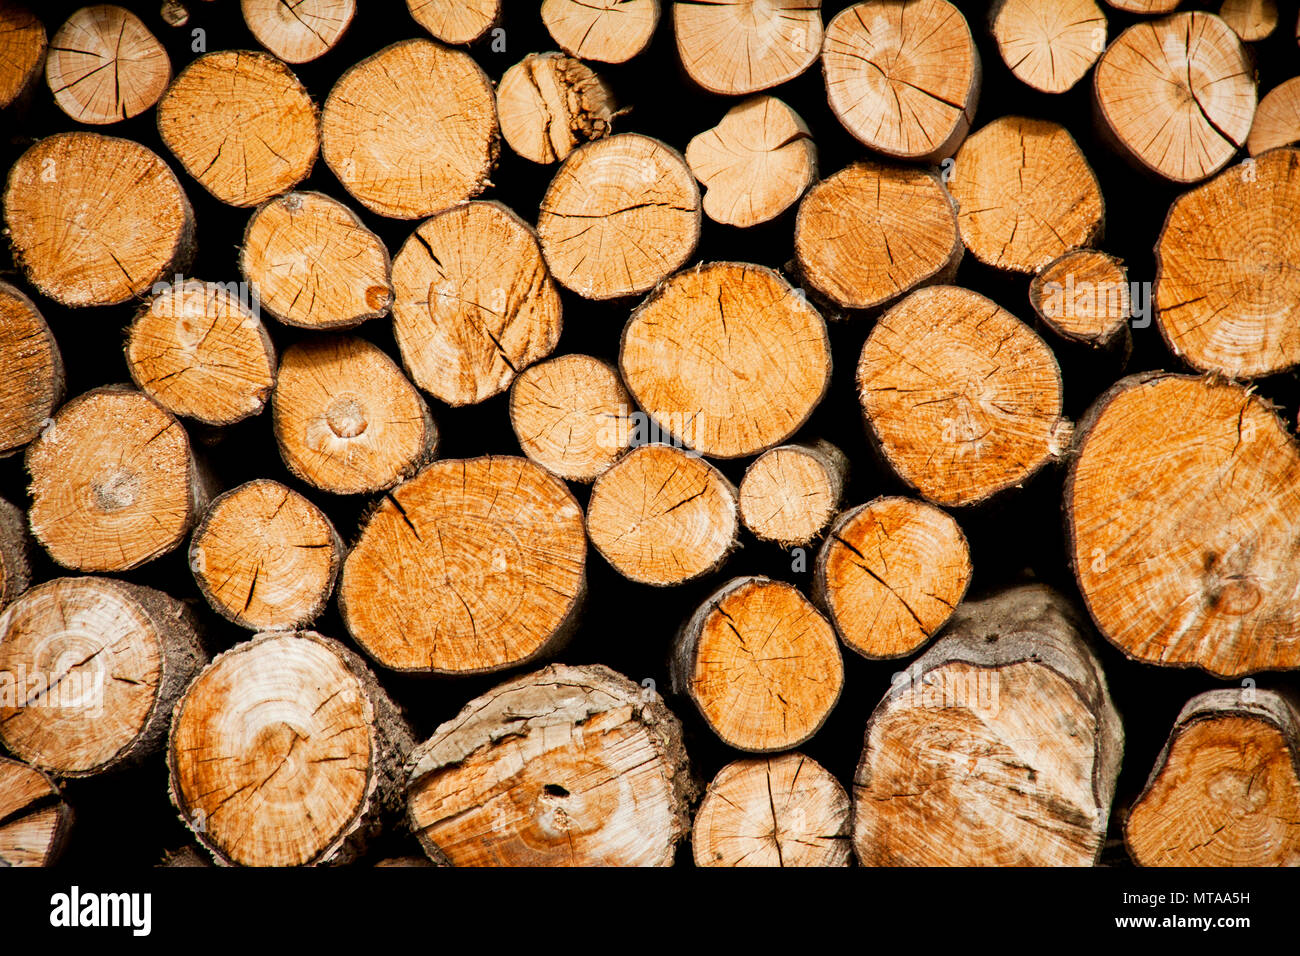 Pile Of Wood Logs Storage For Industry